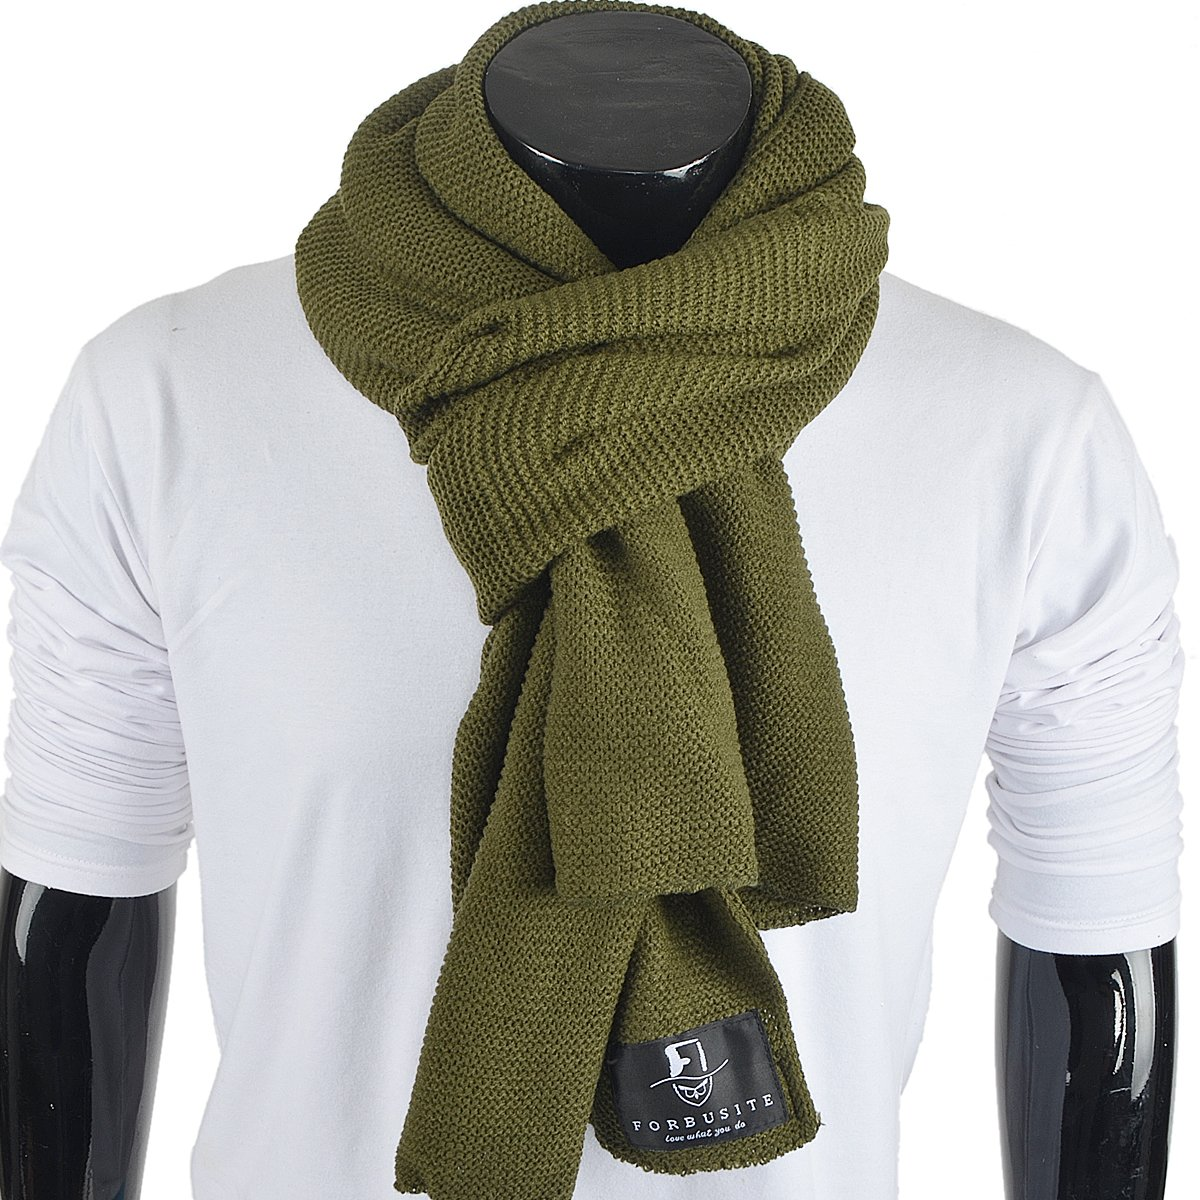 Stylish Unisex Daily Square Pattern Soft Knitted Winter Scarf E5031 (E5081-Green)